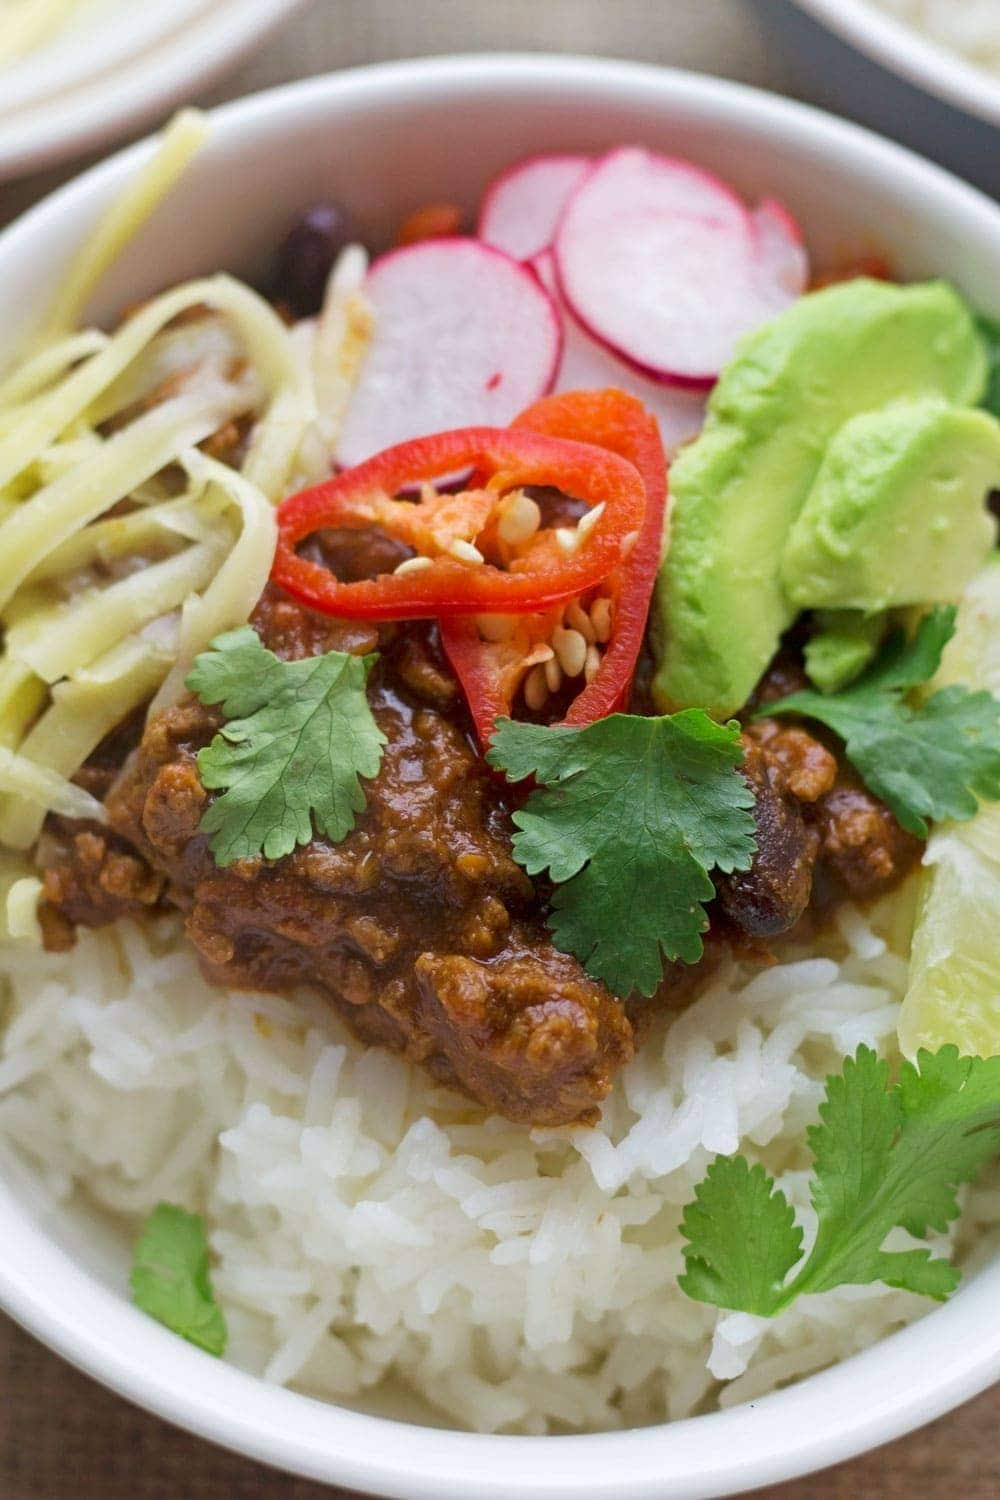 Classic beef chilli con carne with toppings